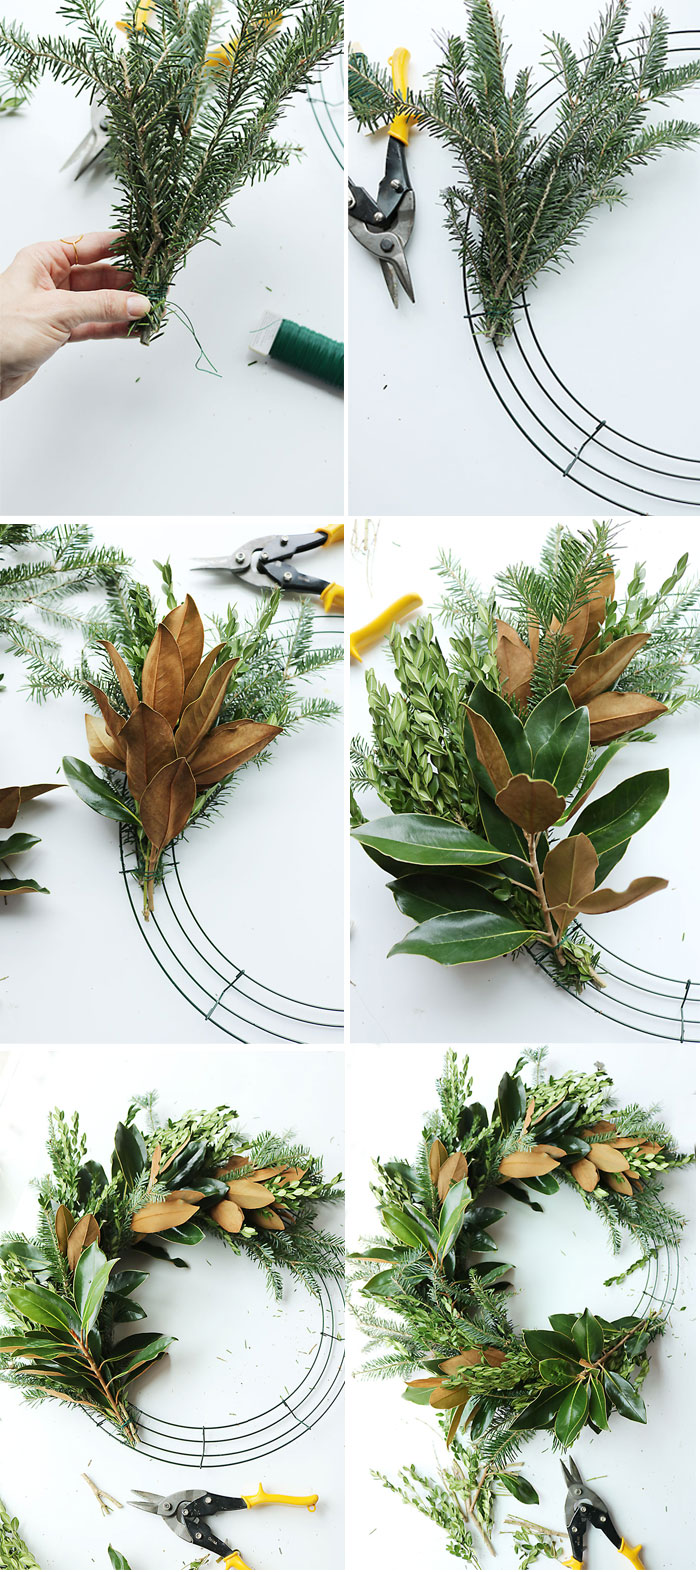 magnolia-wreath-diy-step-by-step, magnolia-wreath-diy, magnolia wreath diy, magnolia christmas decoration, southern christmas, christmas wreath diy, how to make a magnolia wreath tutorial, mixed branch christmas wreath, cedar wreath, instructions, how to make wreath, DIY wreath